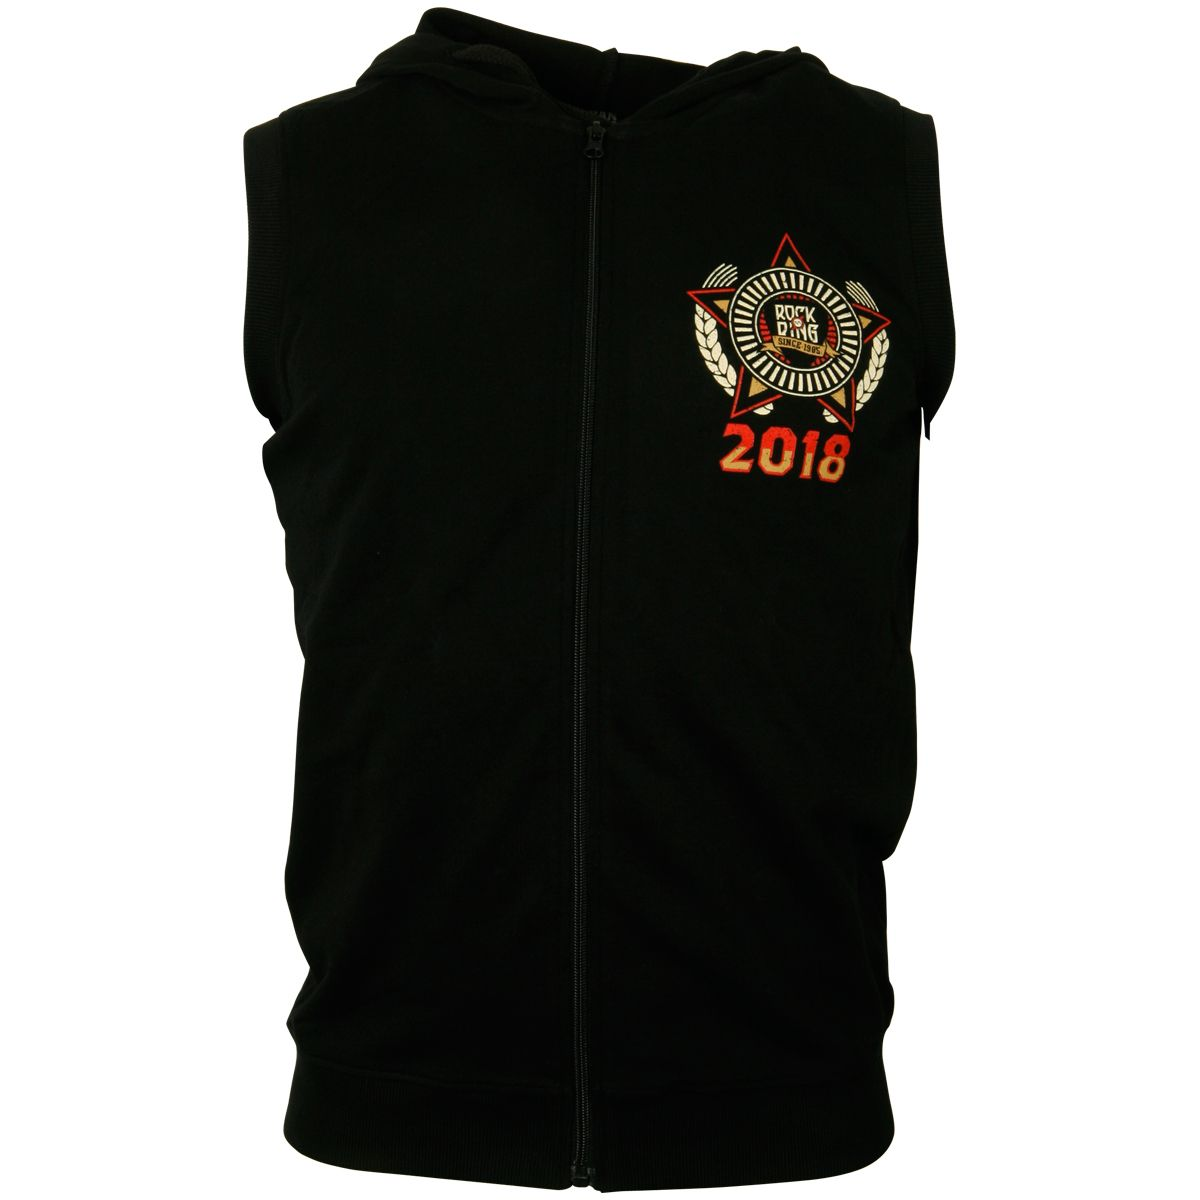 Offizielles Rock am Ring 2018 - Sleeveless Hoodie Spike Star - schwarz - limitiert